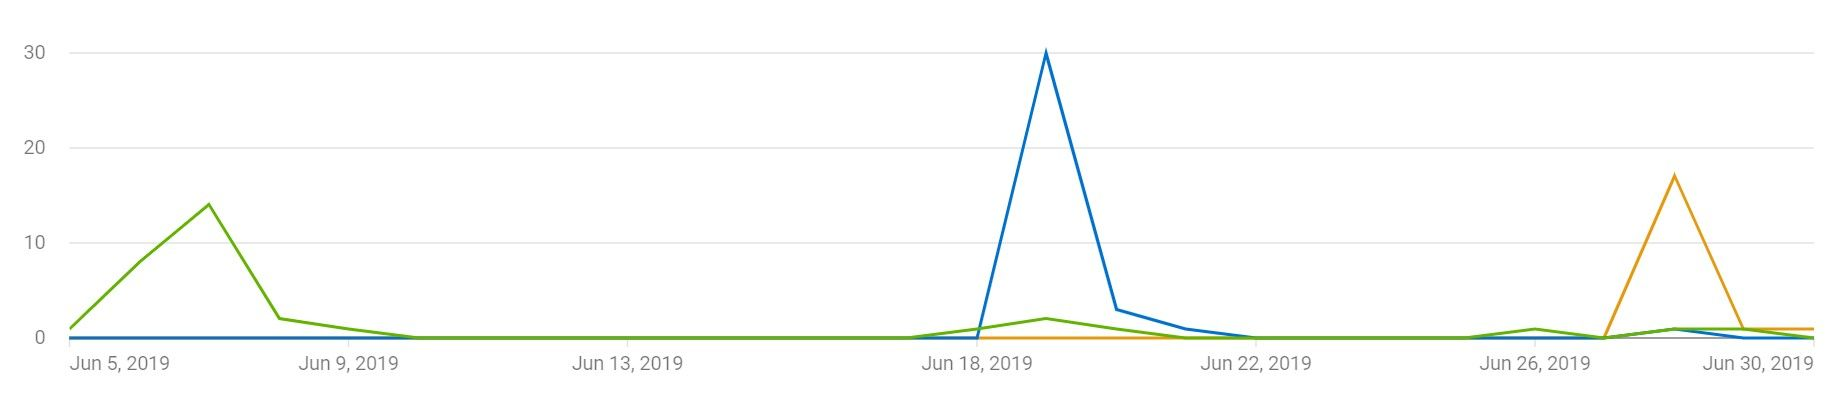 June 2019 Subscribers Gained.